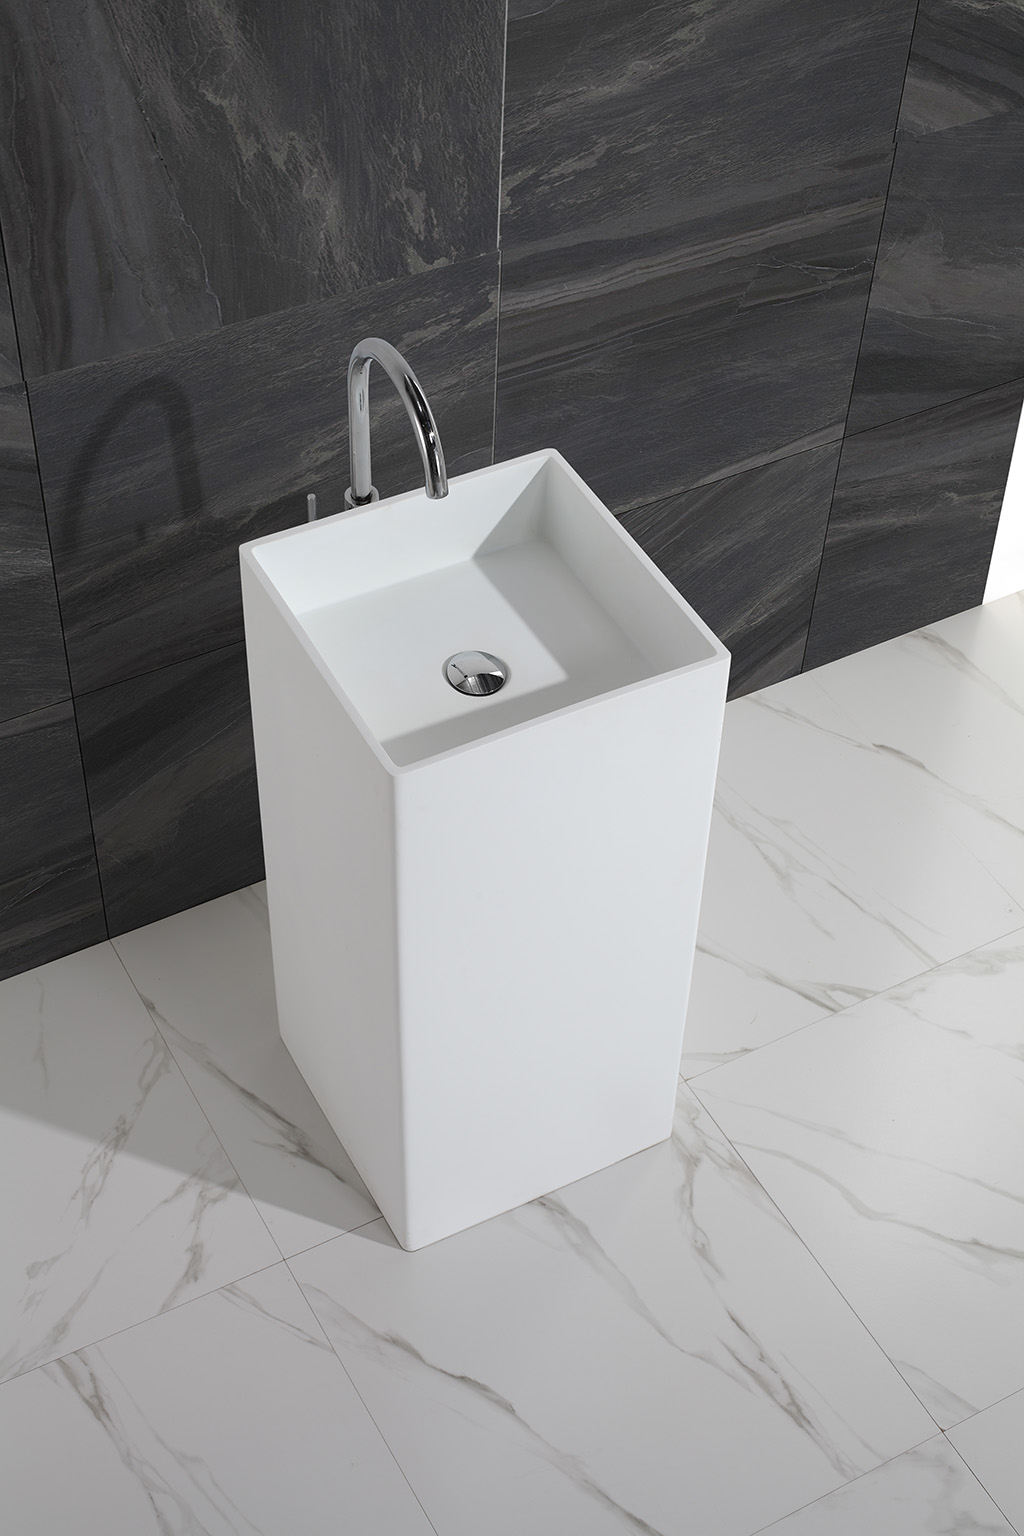 KingKonree professional free standing wash basin customized for home-1